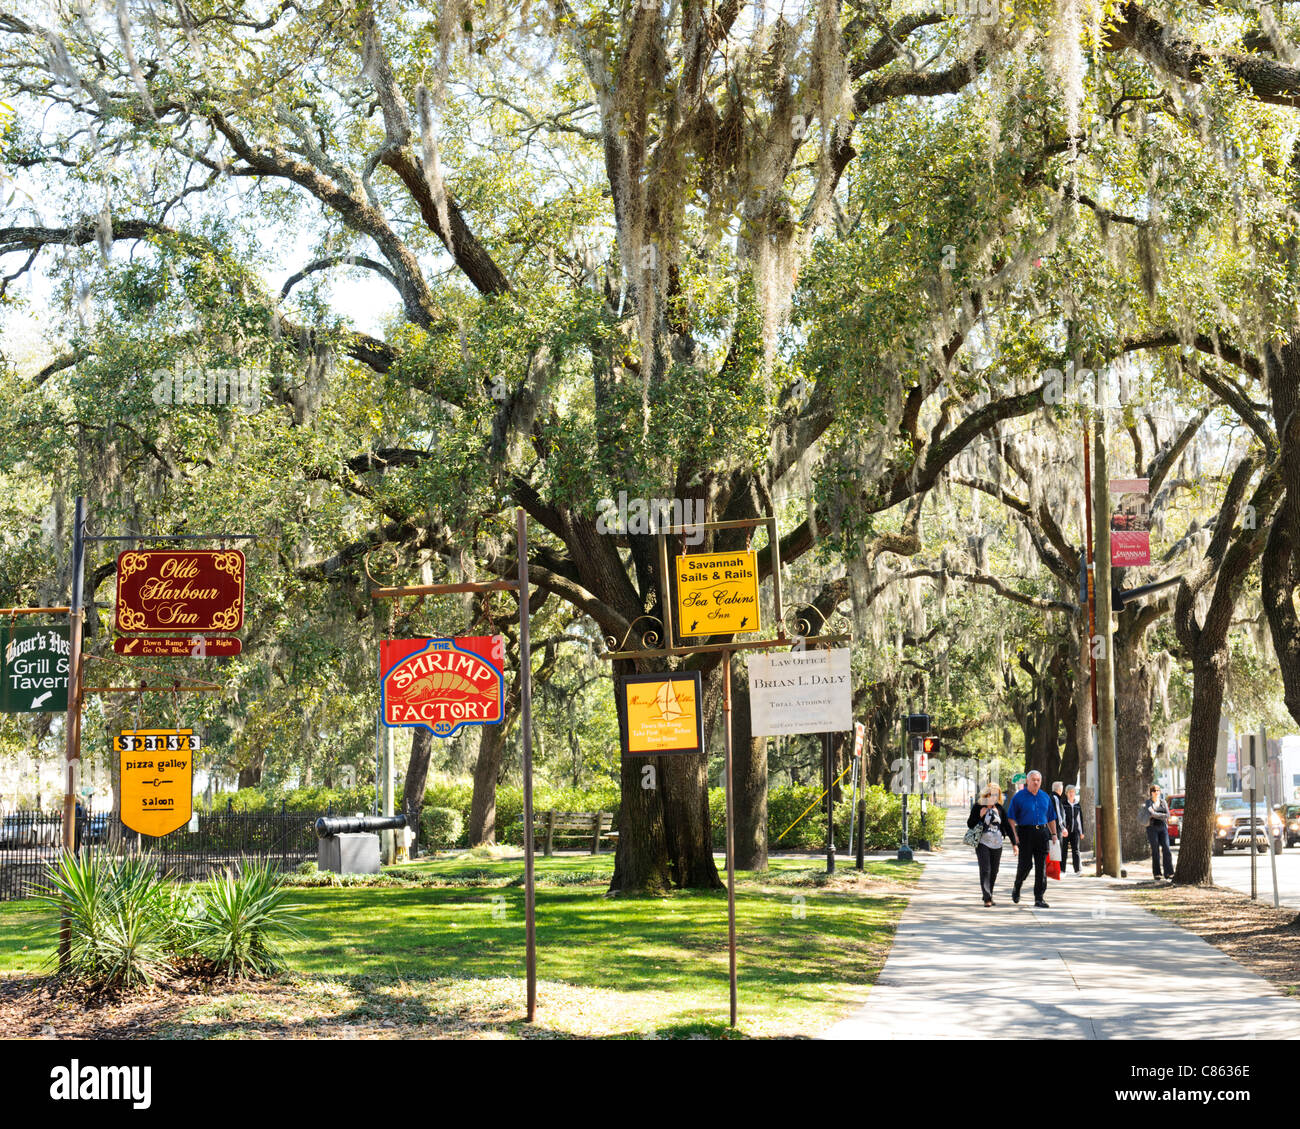 Inn Adverts Emmet Park Savannah - Stock Image